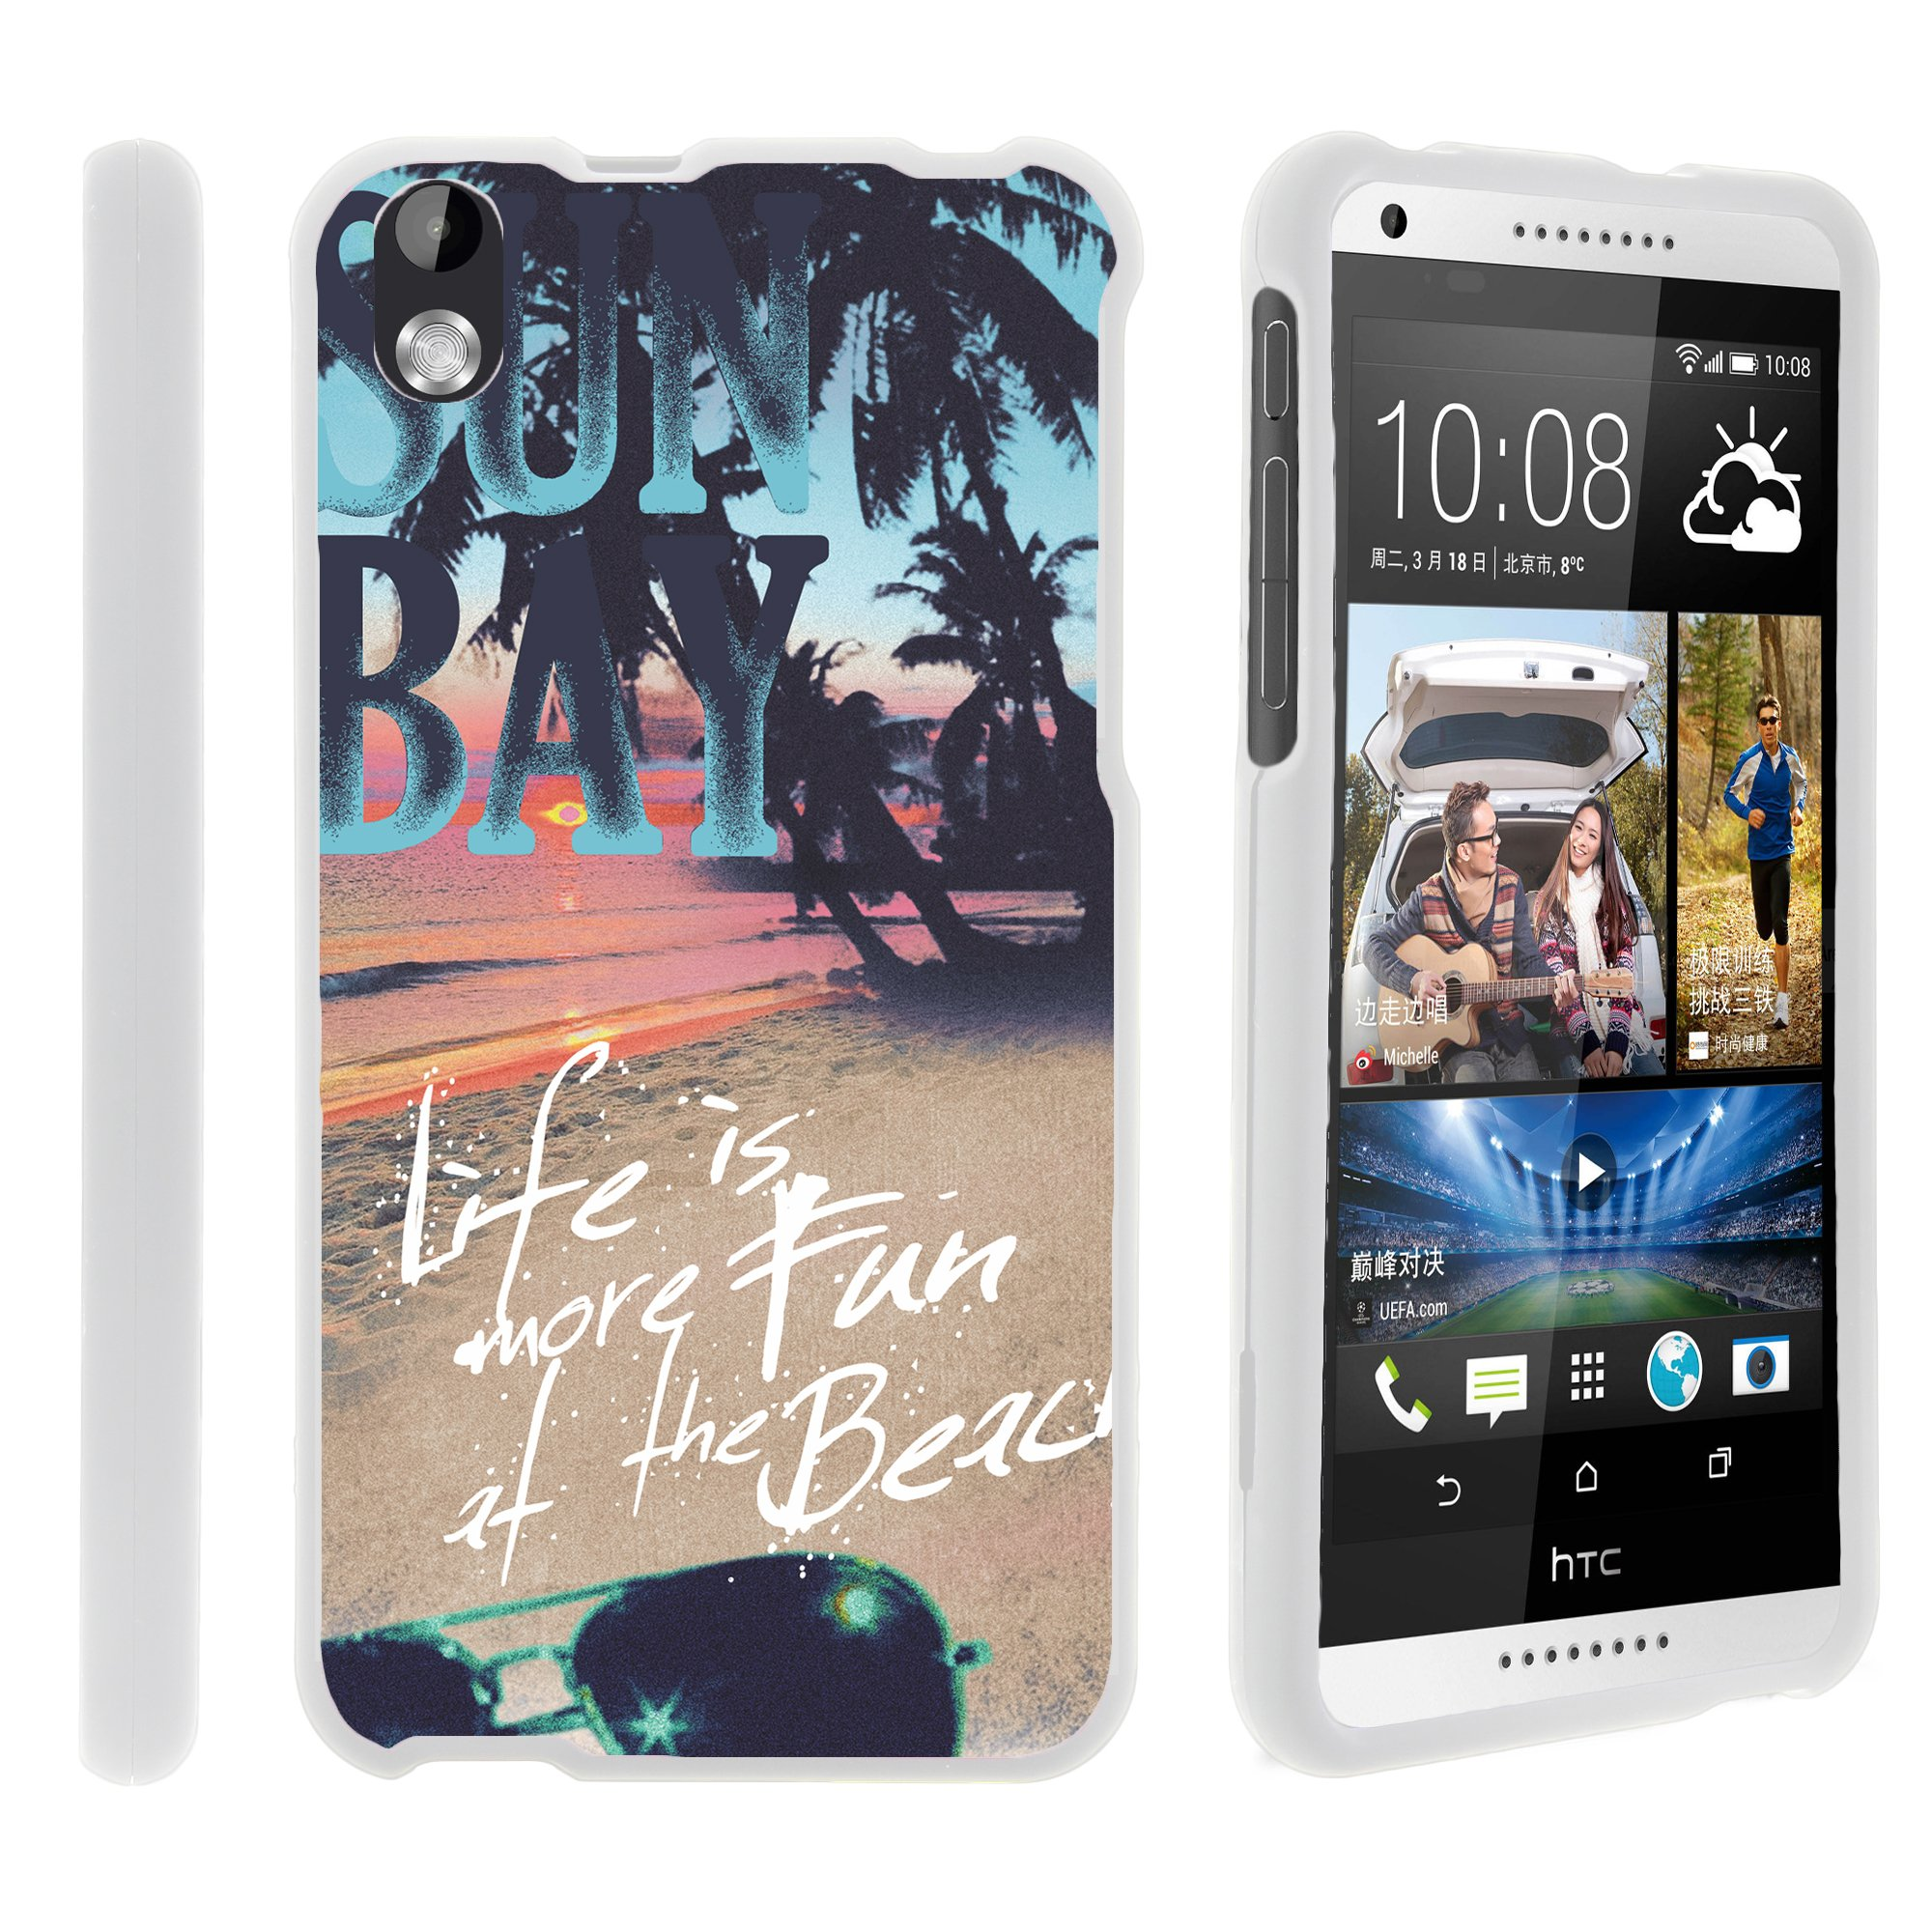 HTC Desire 816, [SNAP SHELL][White] Hard White Plastic Case with Non Slip Matte Coating with Custom Designs - Life at the Beach